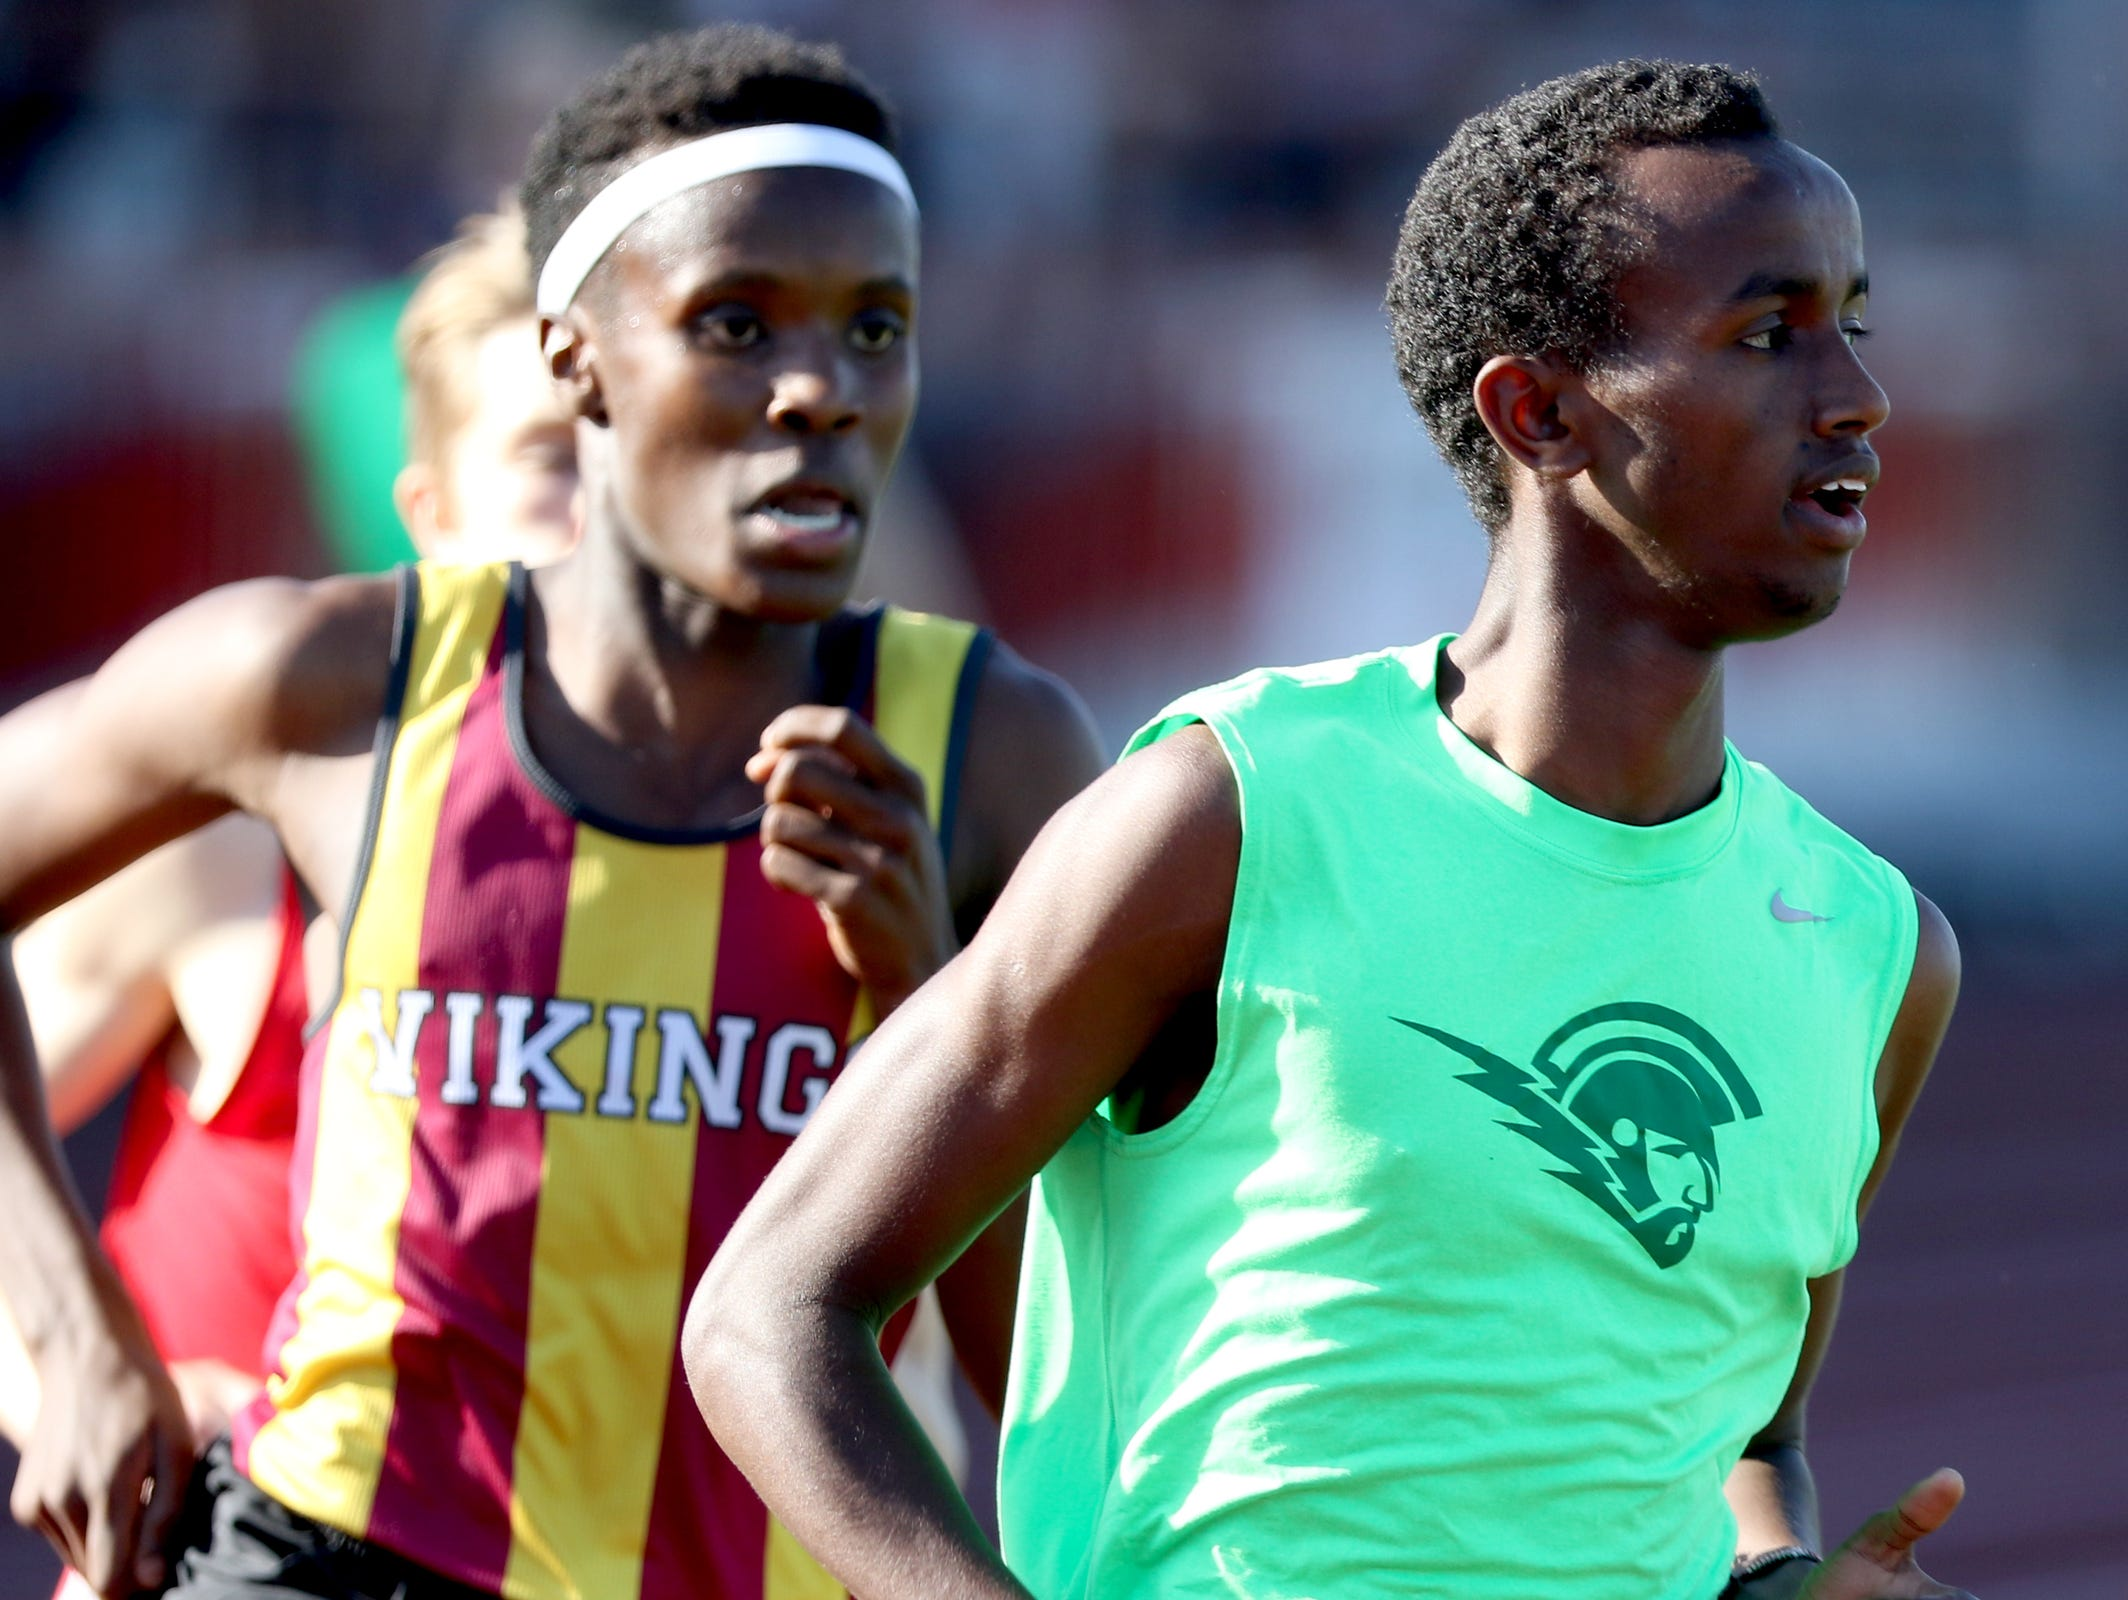 West Salem's Ahmed Muhumed, right, competes in the finals of the boys 1500 meters at the Greater Valley Conference District Championships track and field meet at McMinnville High School on Friday, May 13, 2016. Muhumed placed first.